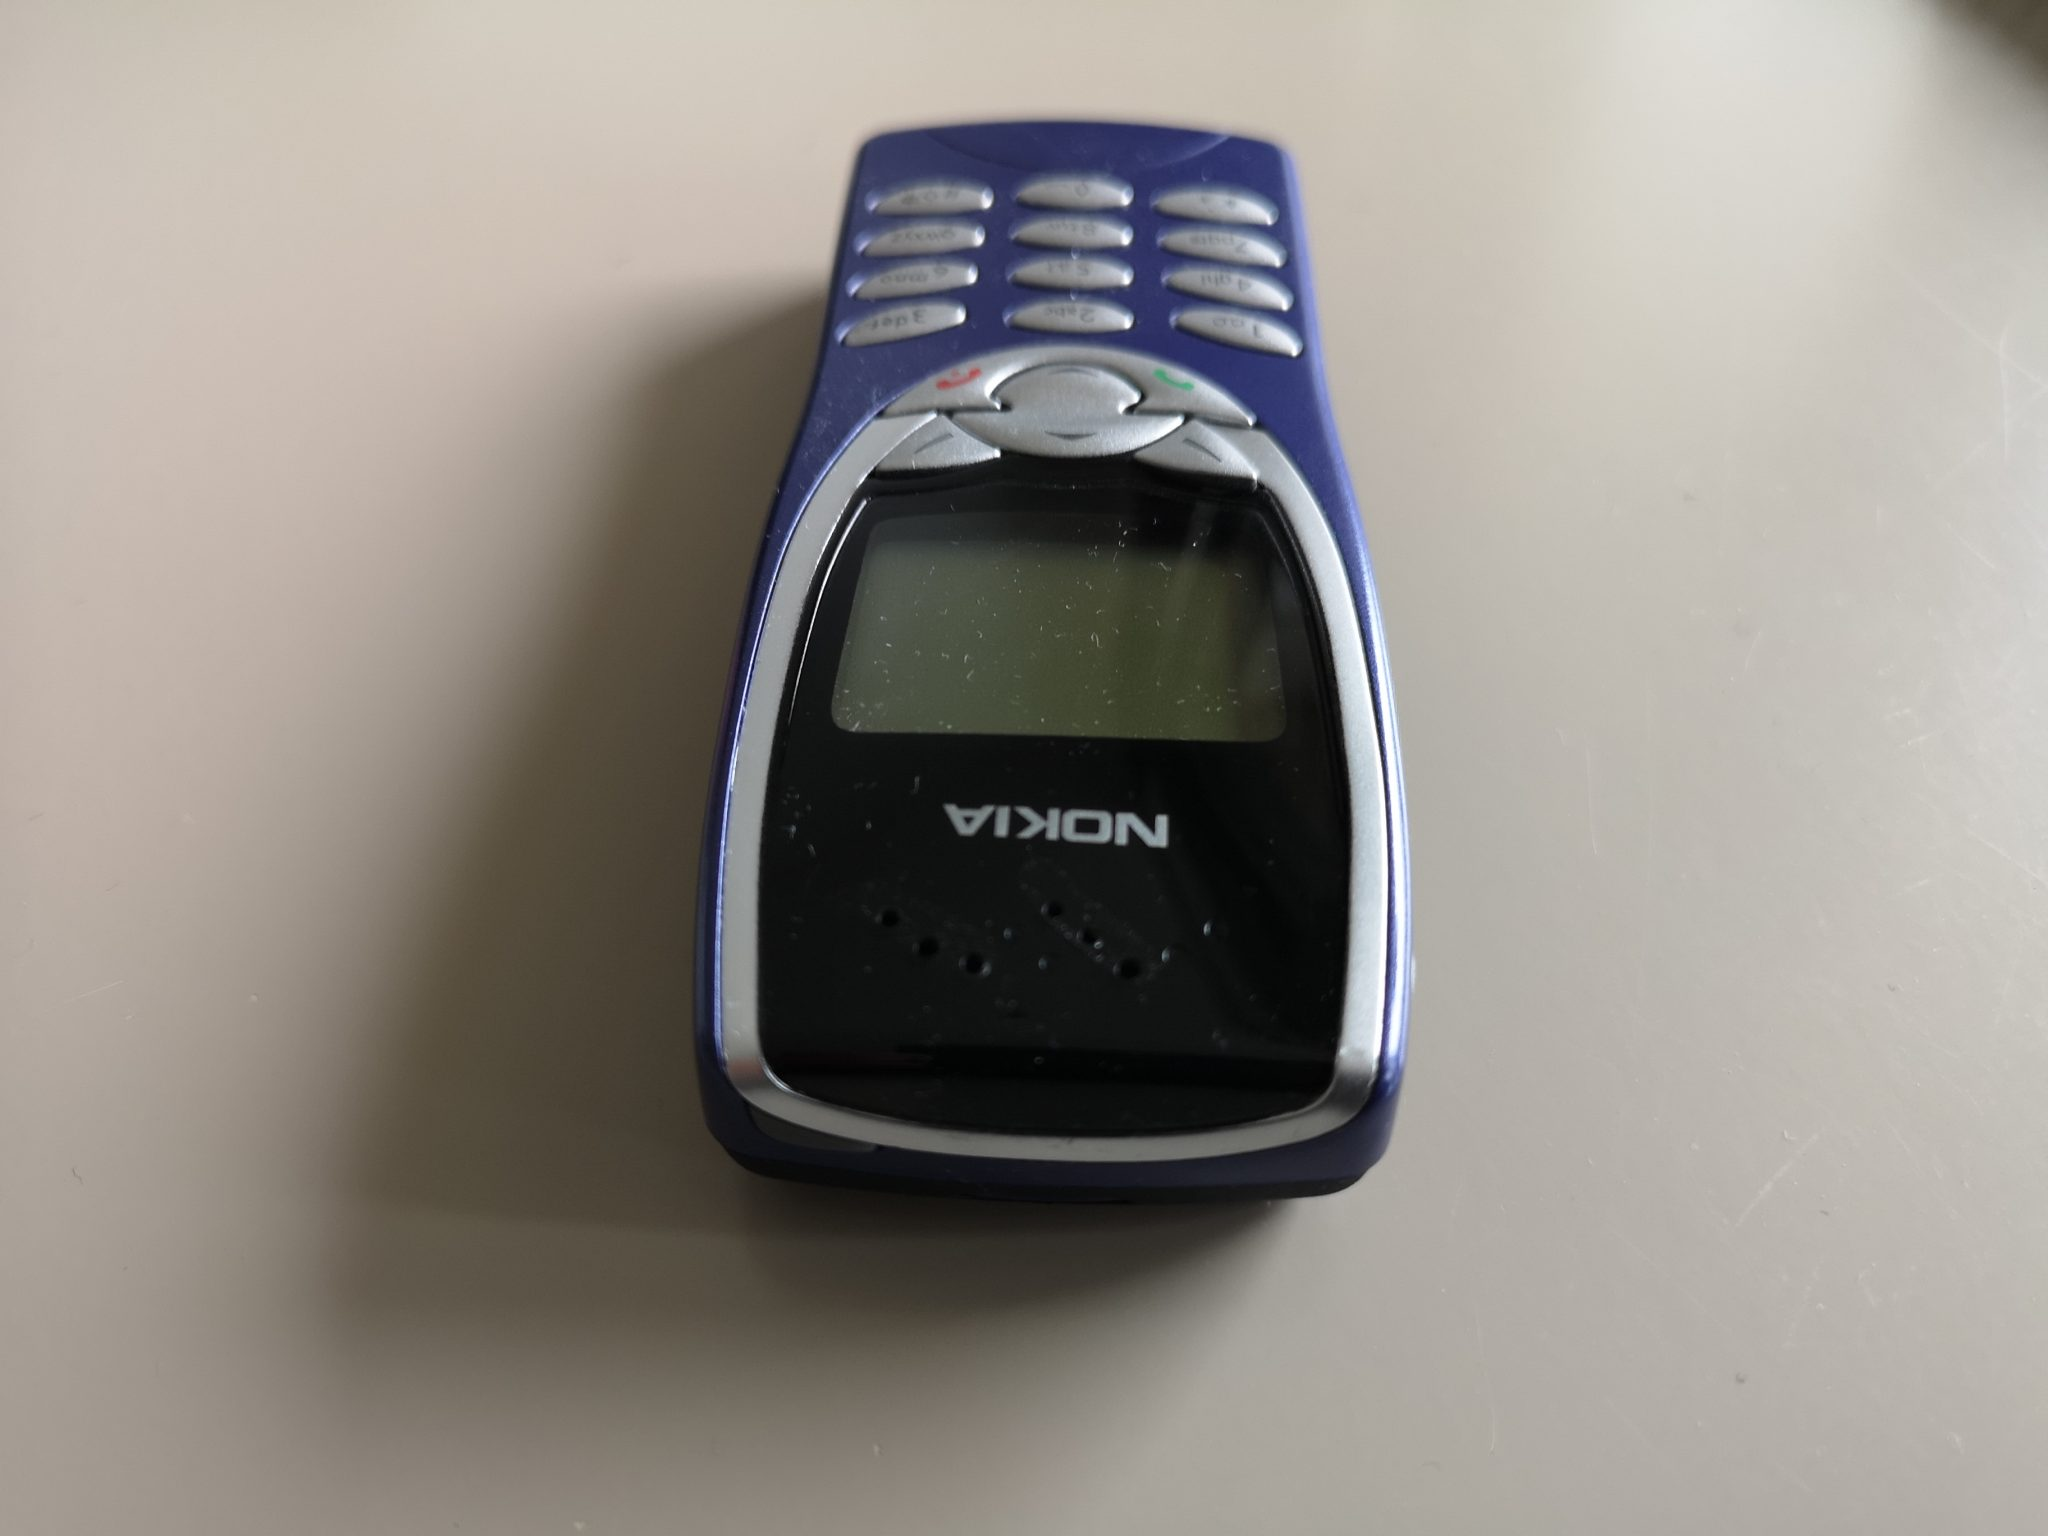 Nokia 8210 Review - Classic Handset Stands the Test of Time